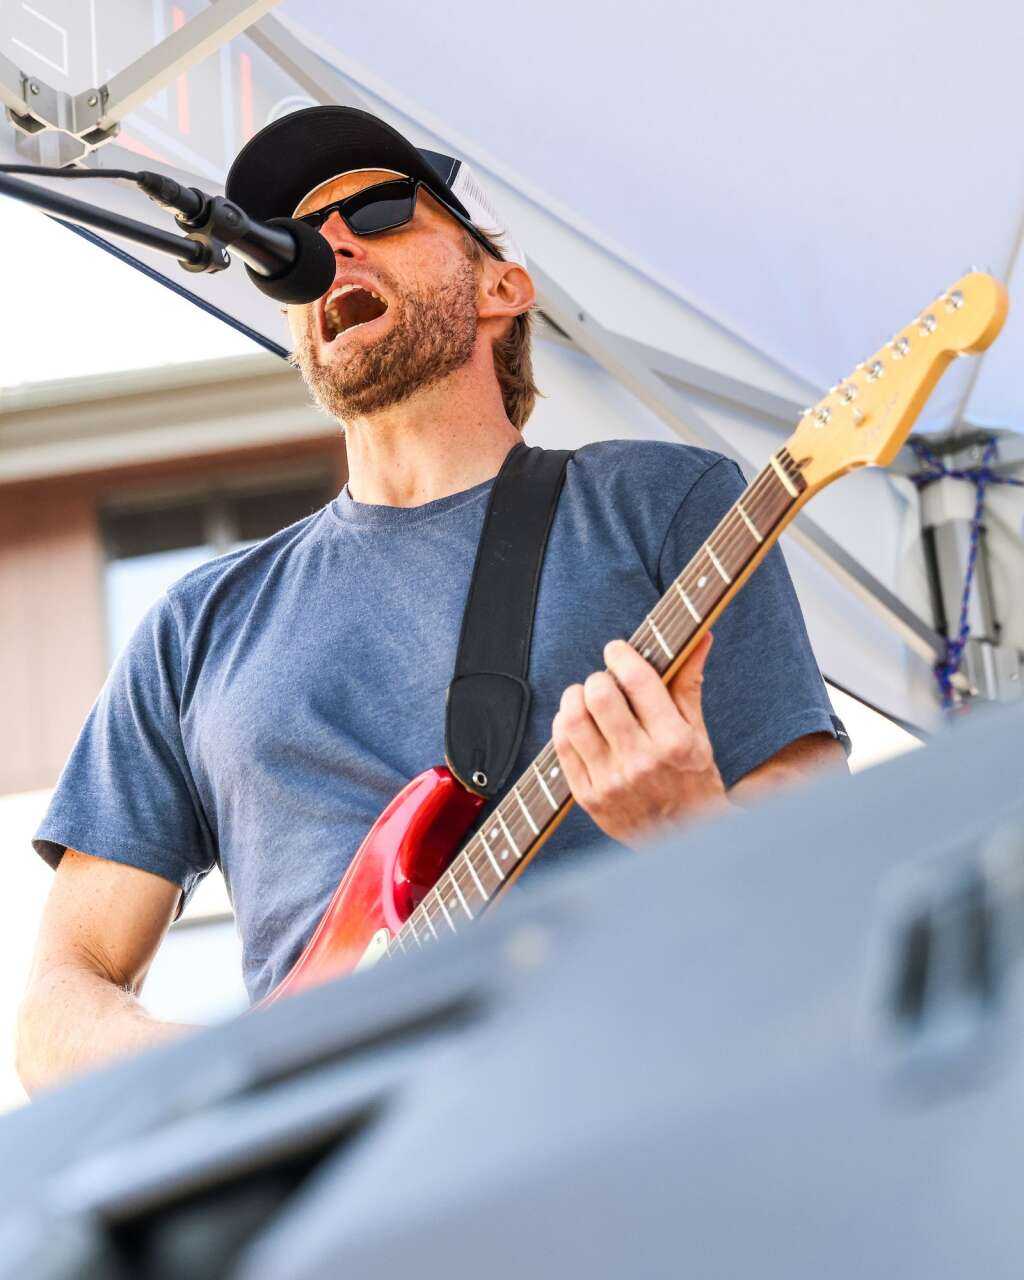 Andy Gunion of the Snowmass-based band Nearly Now performs in front of The Collective on Saturday, July 10, 2021, in Snowmass Base Village. Photo by Austin Colbert/The Aspen Times.